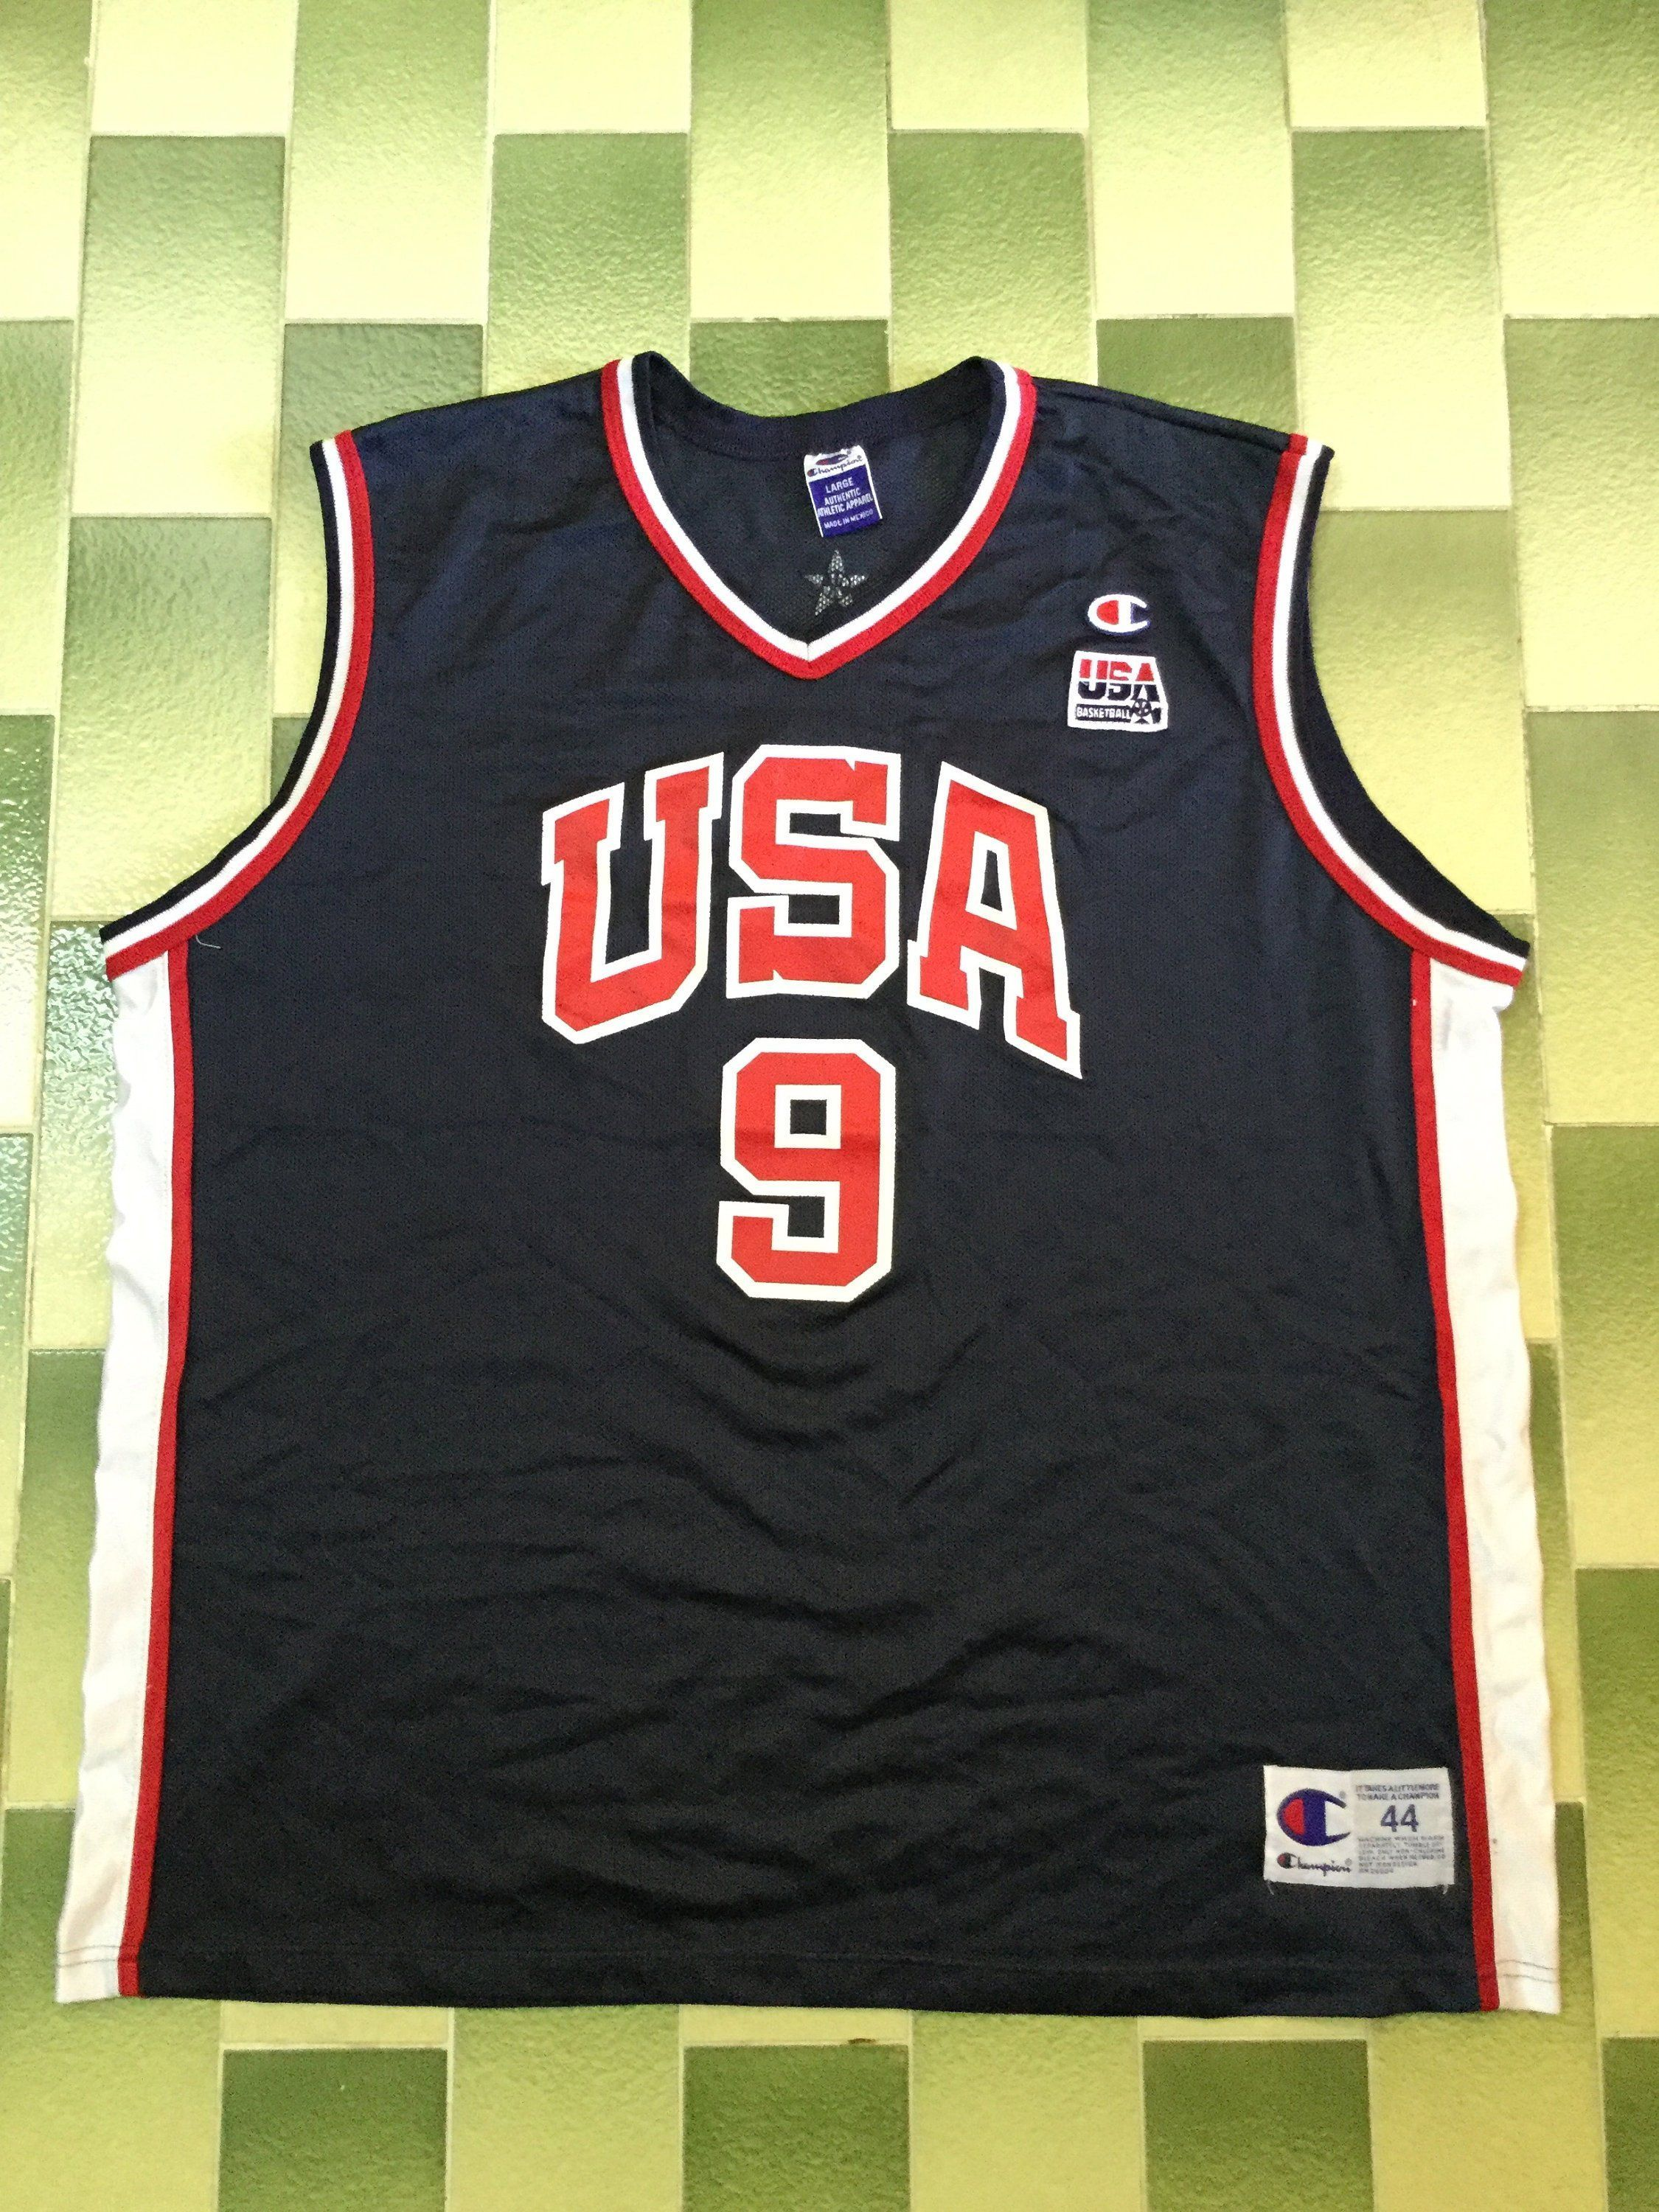 best loved 29eb6 ede7f champion #jersey #vincecarter #basketball | Clothes in 2019 ...